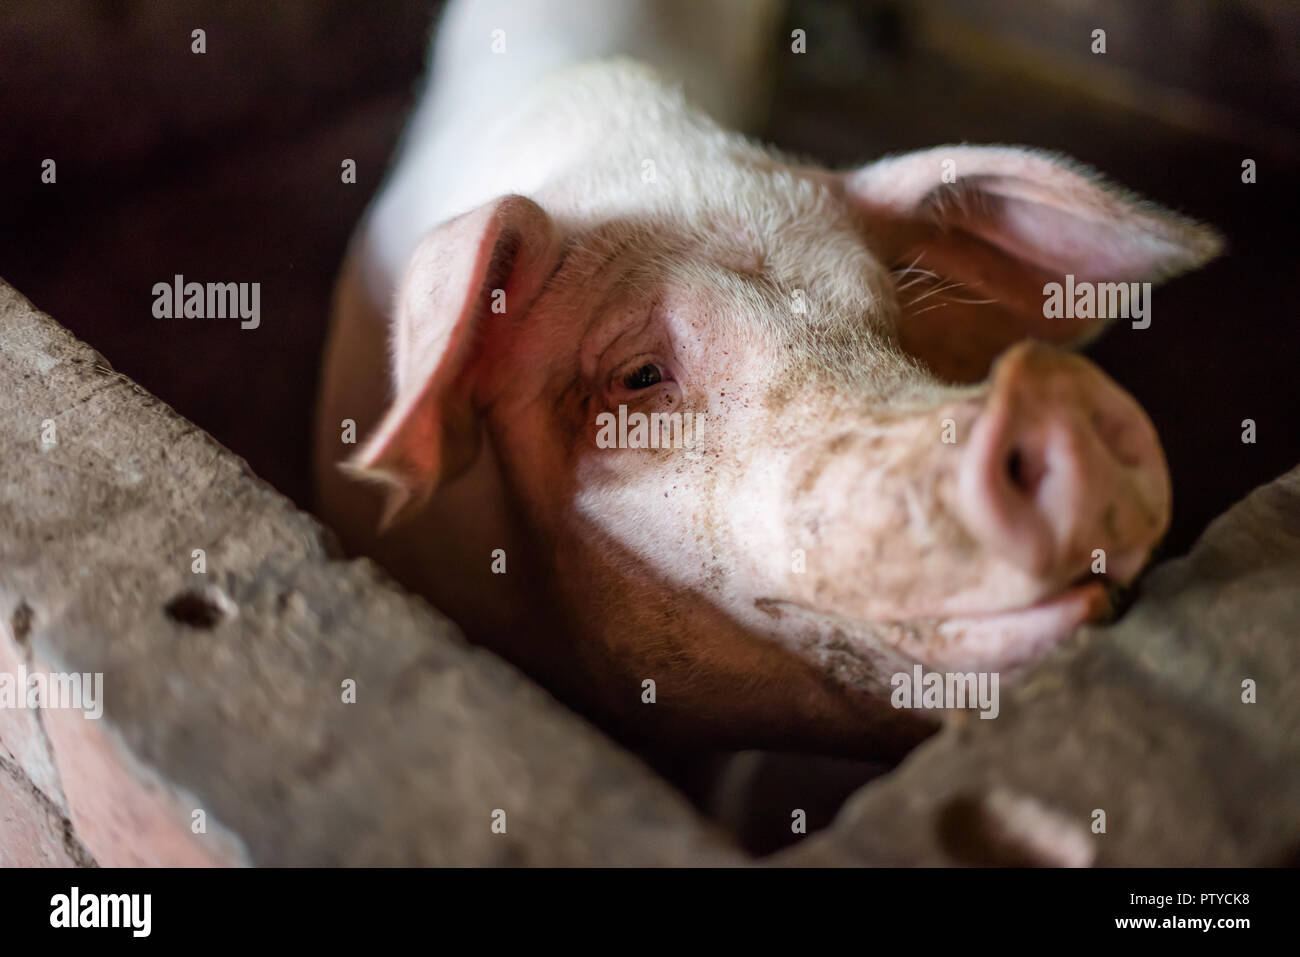 Pig close up portrait in a farm - Stock Image